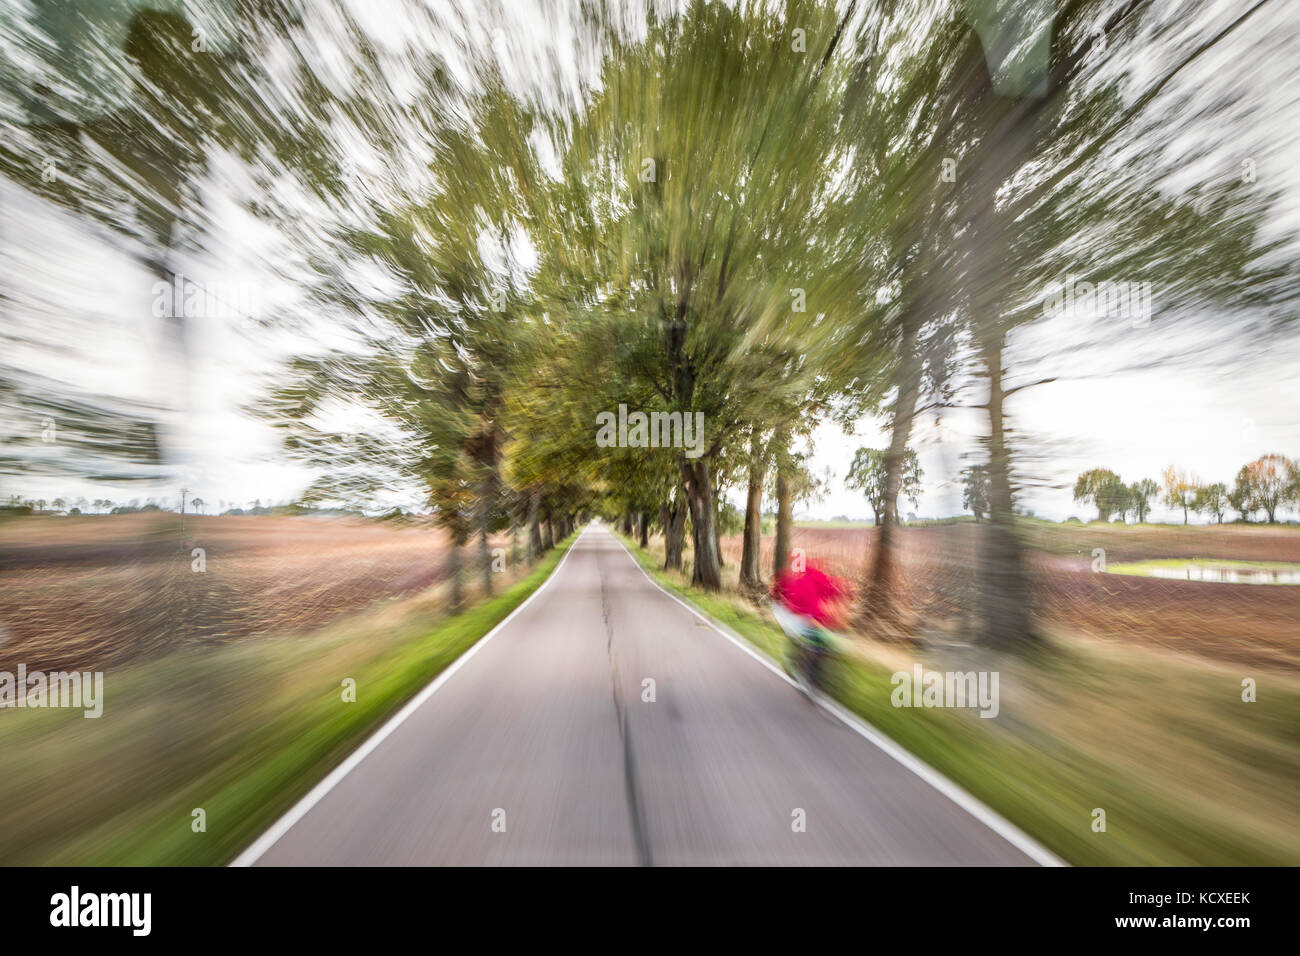 City evening lights, highway zoomed perspective blurred by high speed of the car. - Stock Image